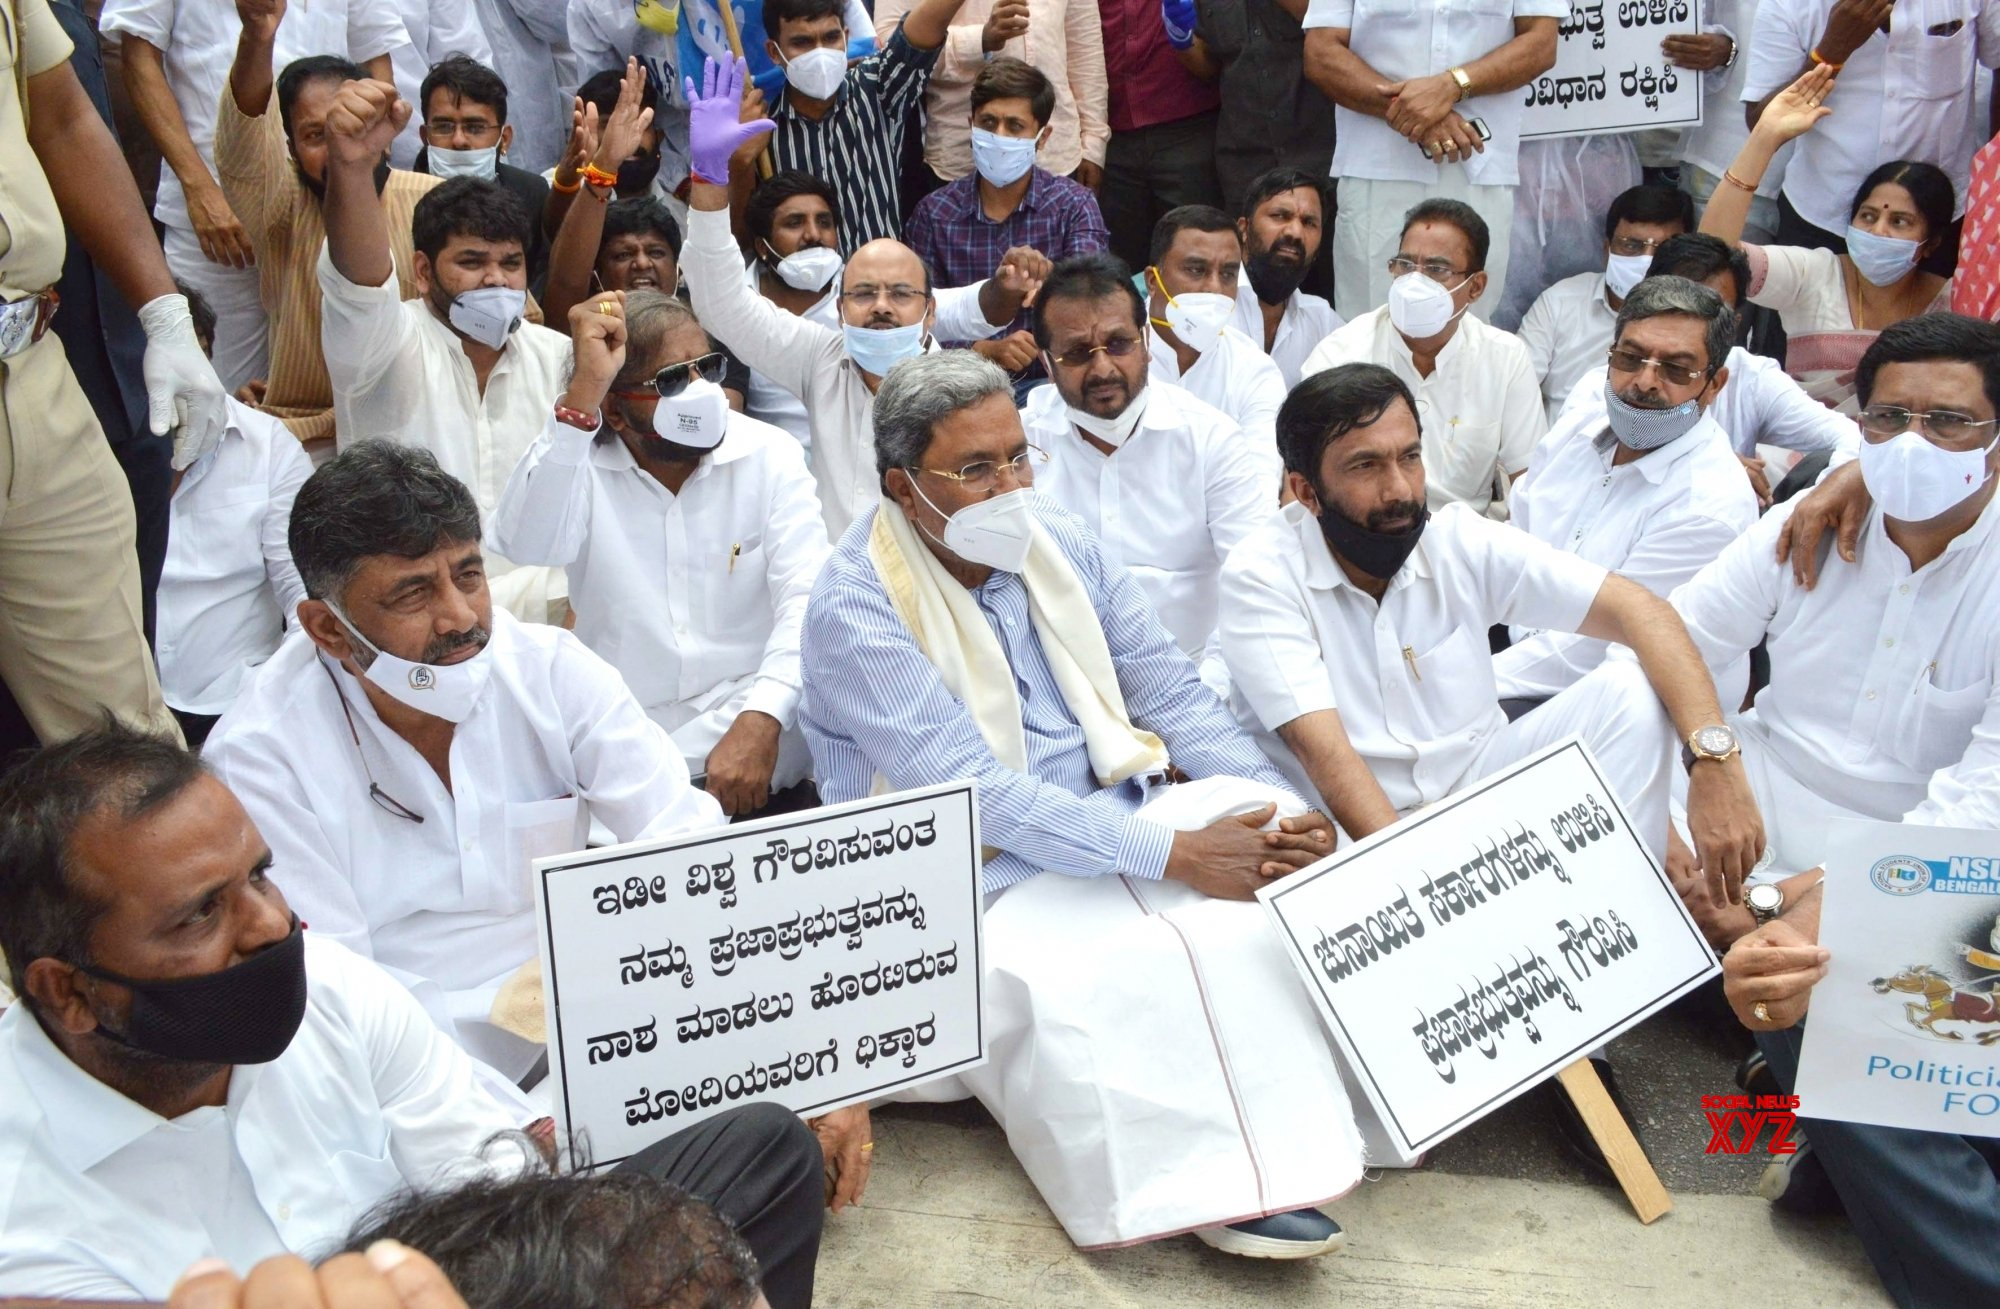 Bengaluru: Congress leaders detained during protest against BJP's 'anti - democratic and anti - constitutional' actions in Rajasthan #Gallery